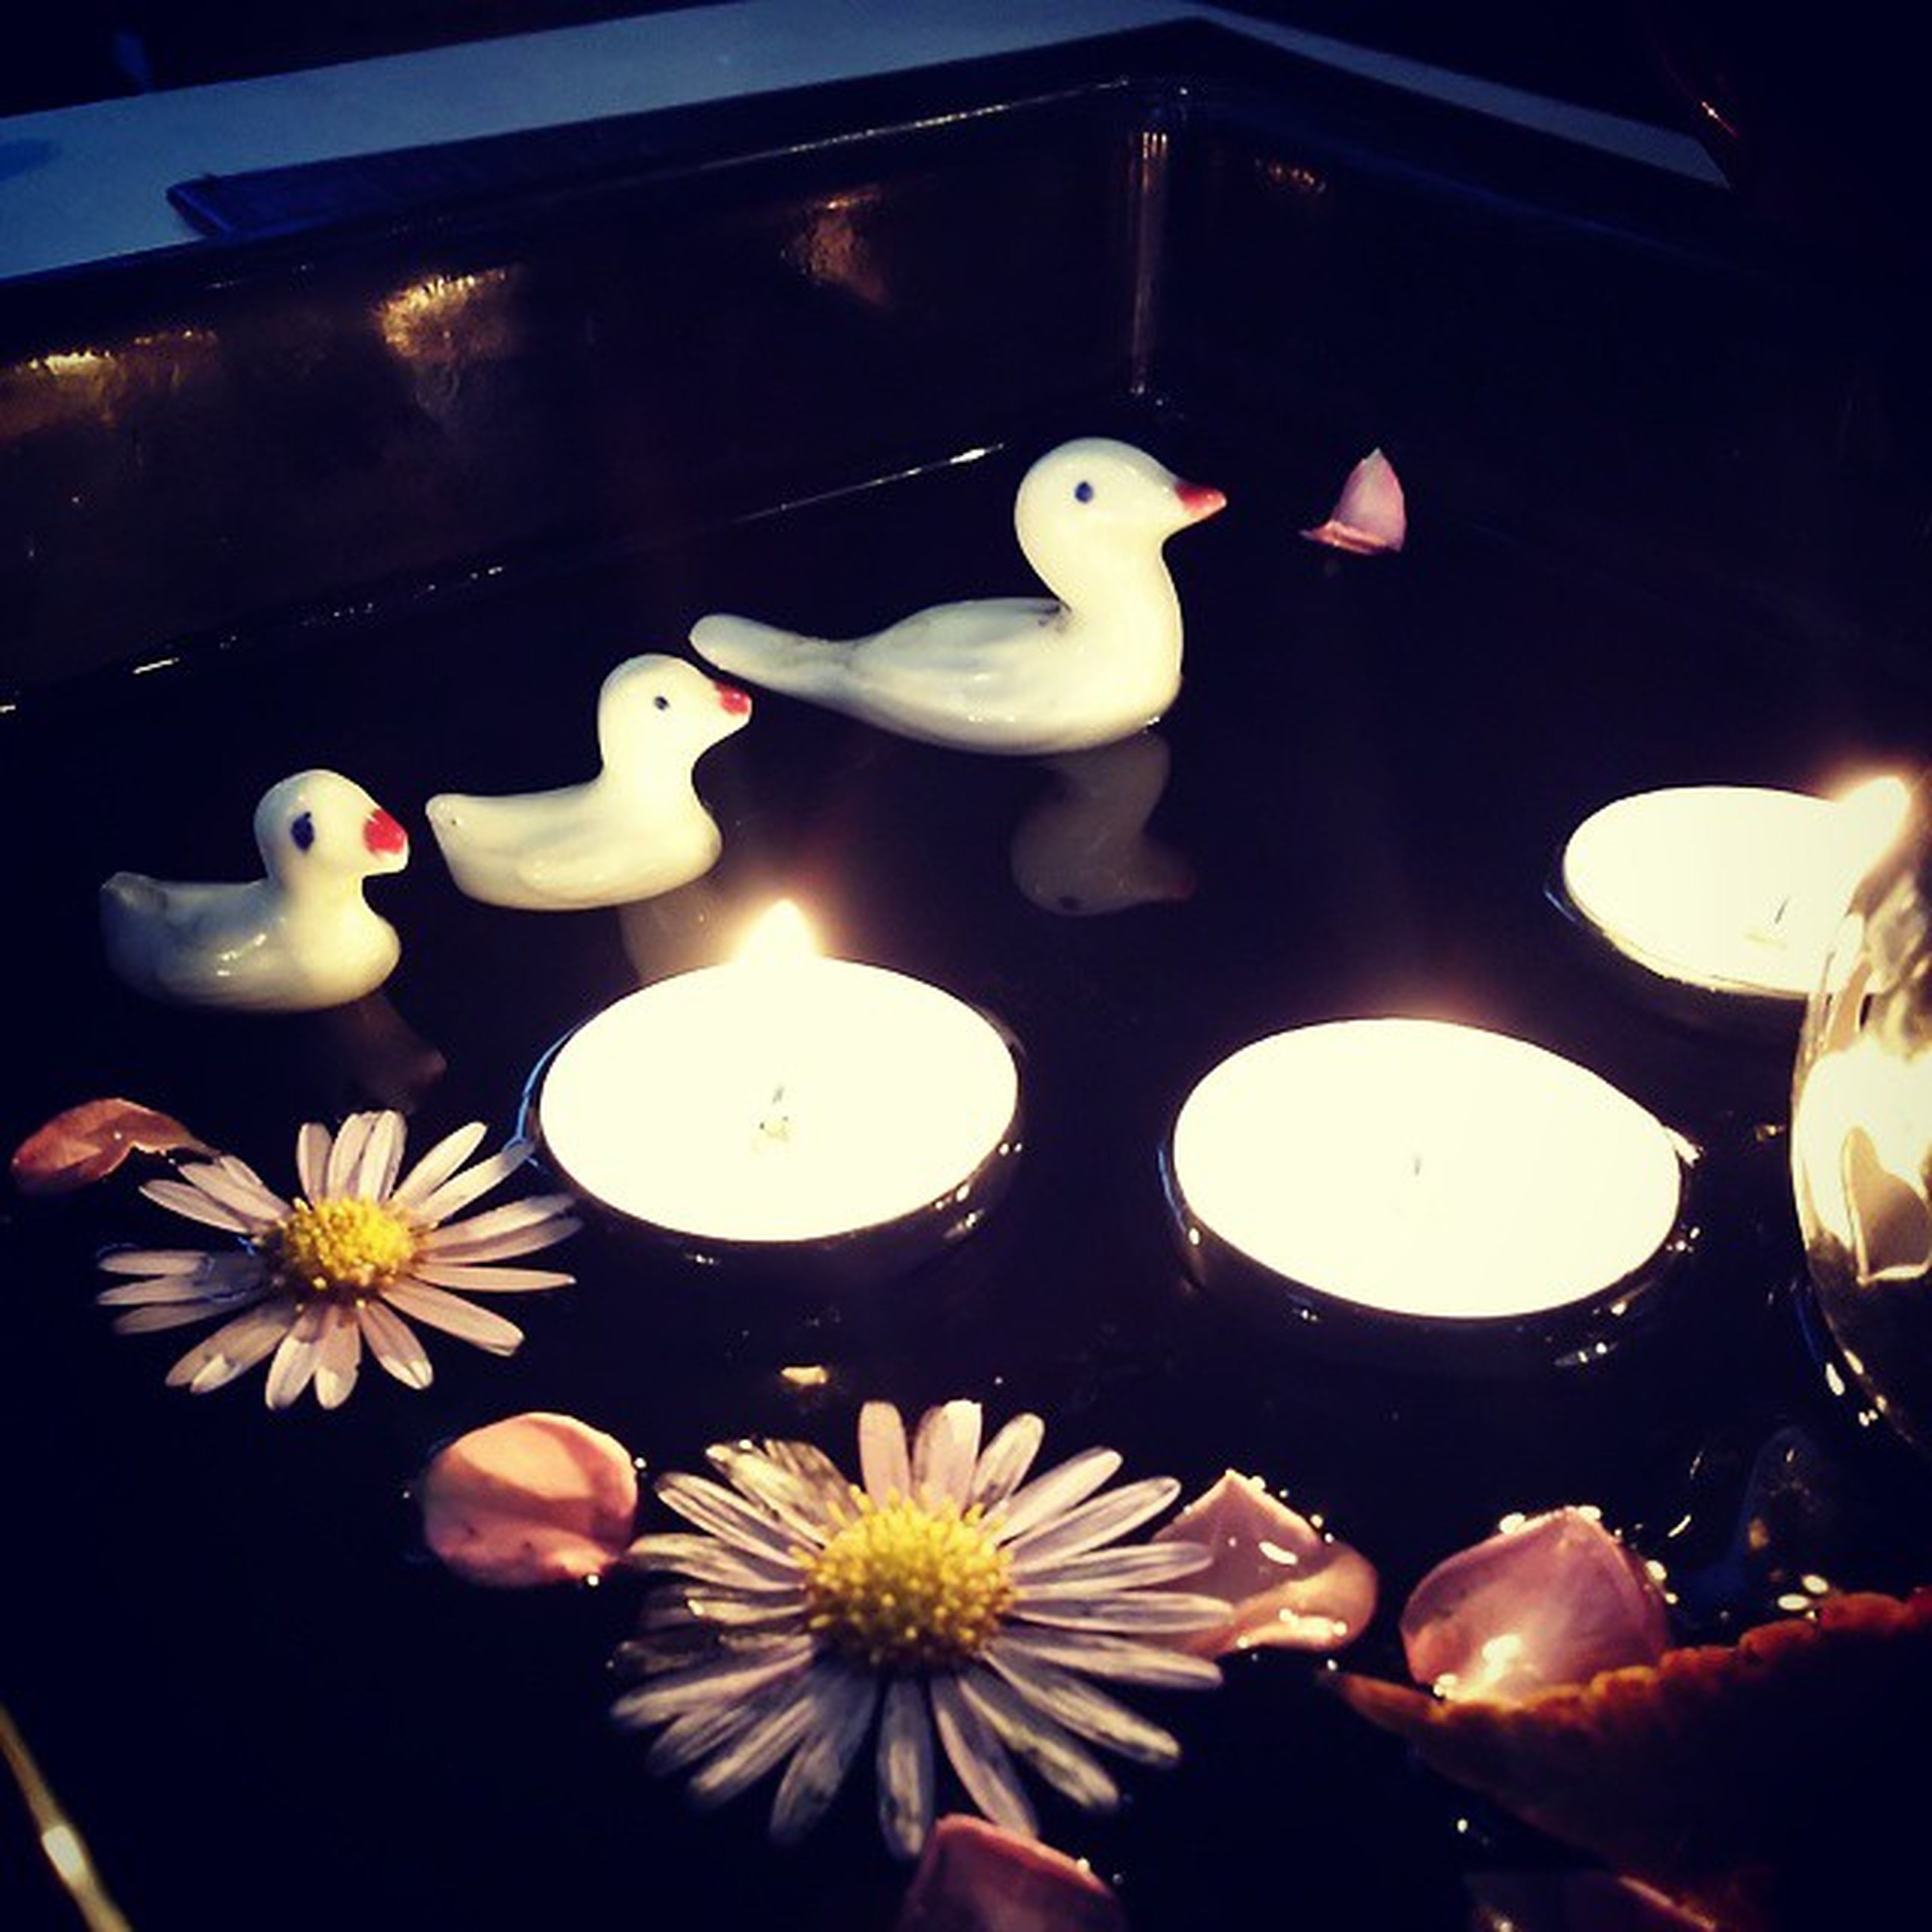 indoors, animal representation, white color, art and craft, variation, decoration, art, high angle view, illuminated, creativity, no people, human representation, flower, close-up, reflection, toy, large group of objects, night, abundance, animal themes